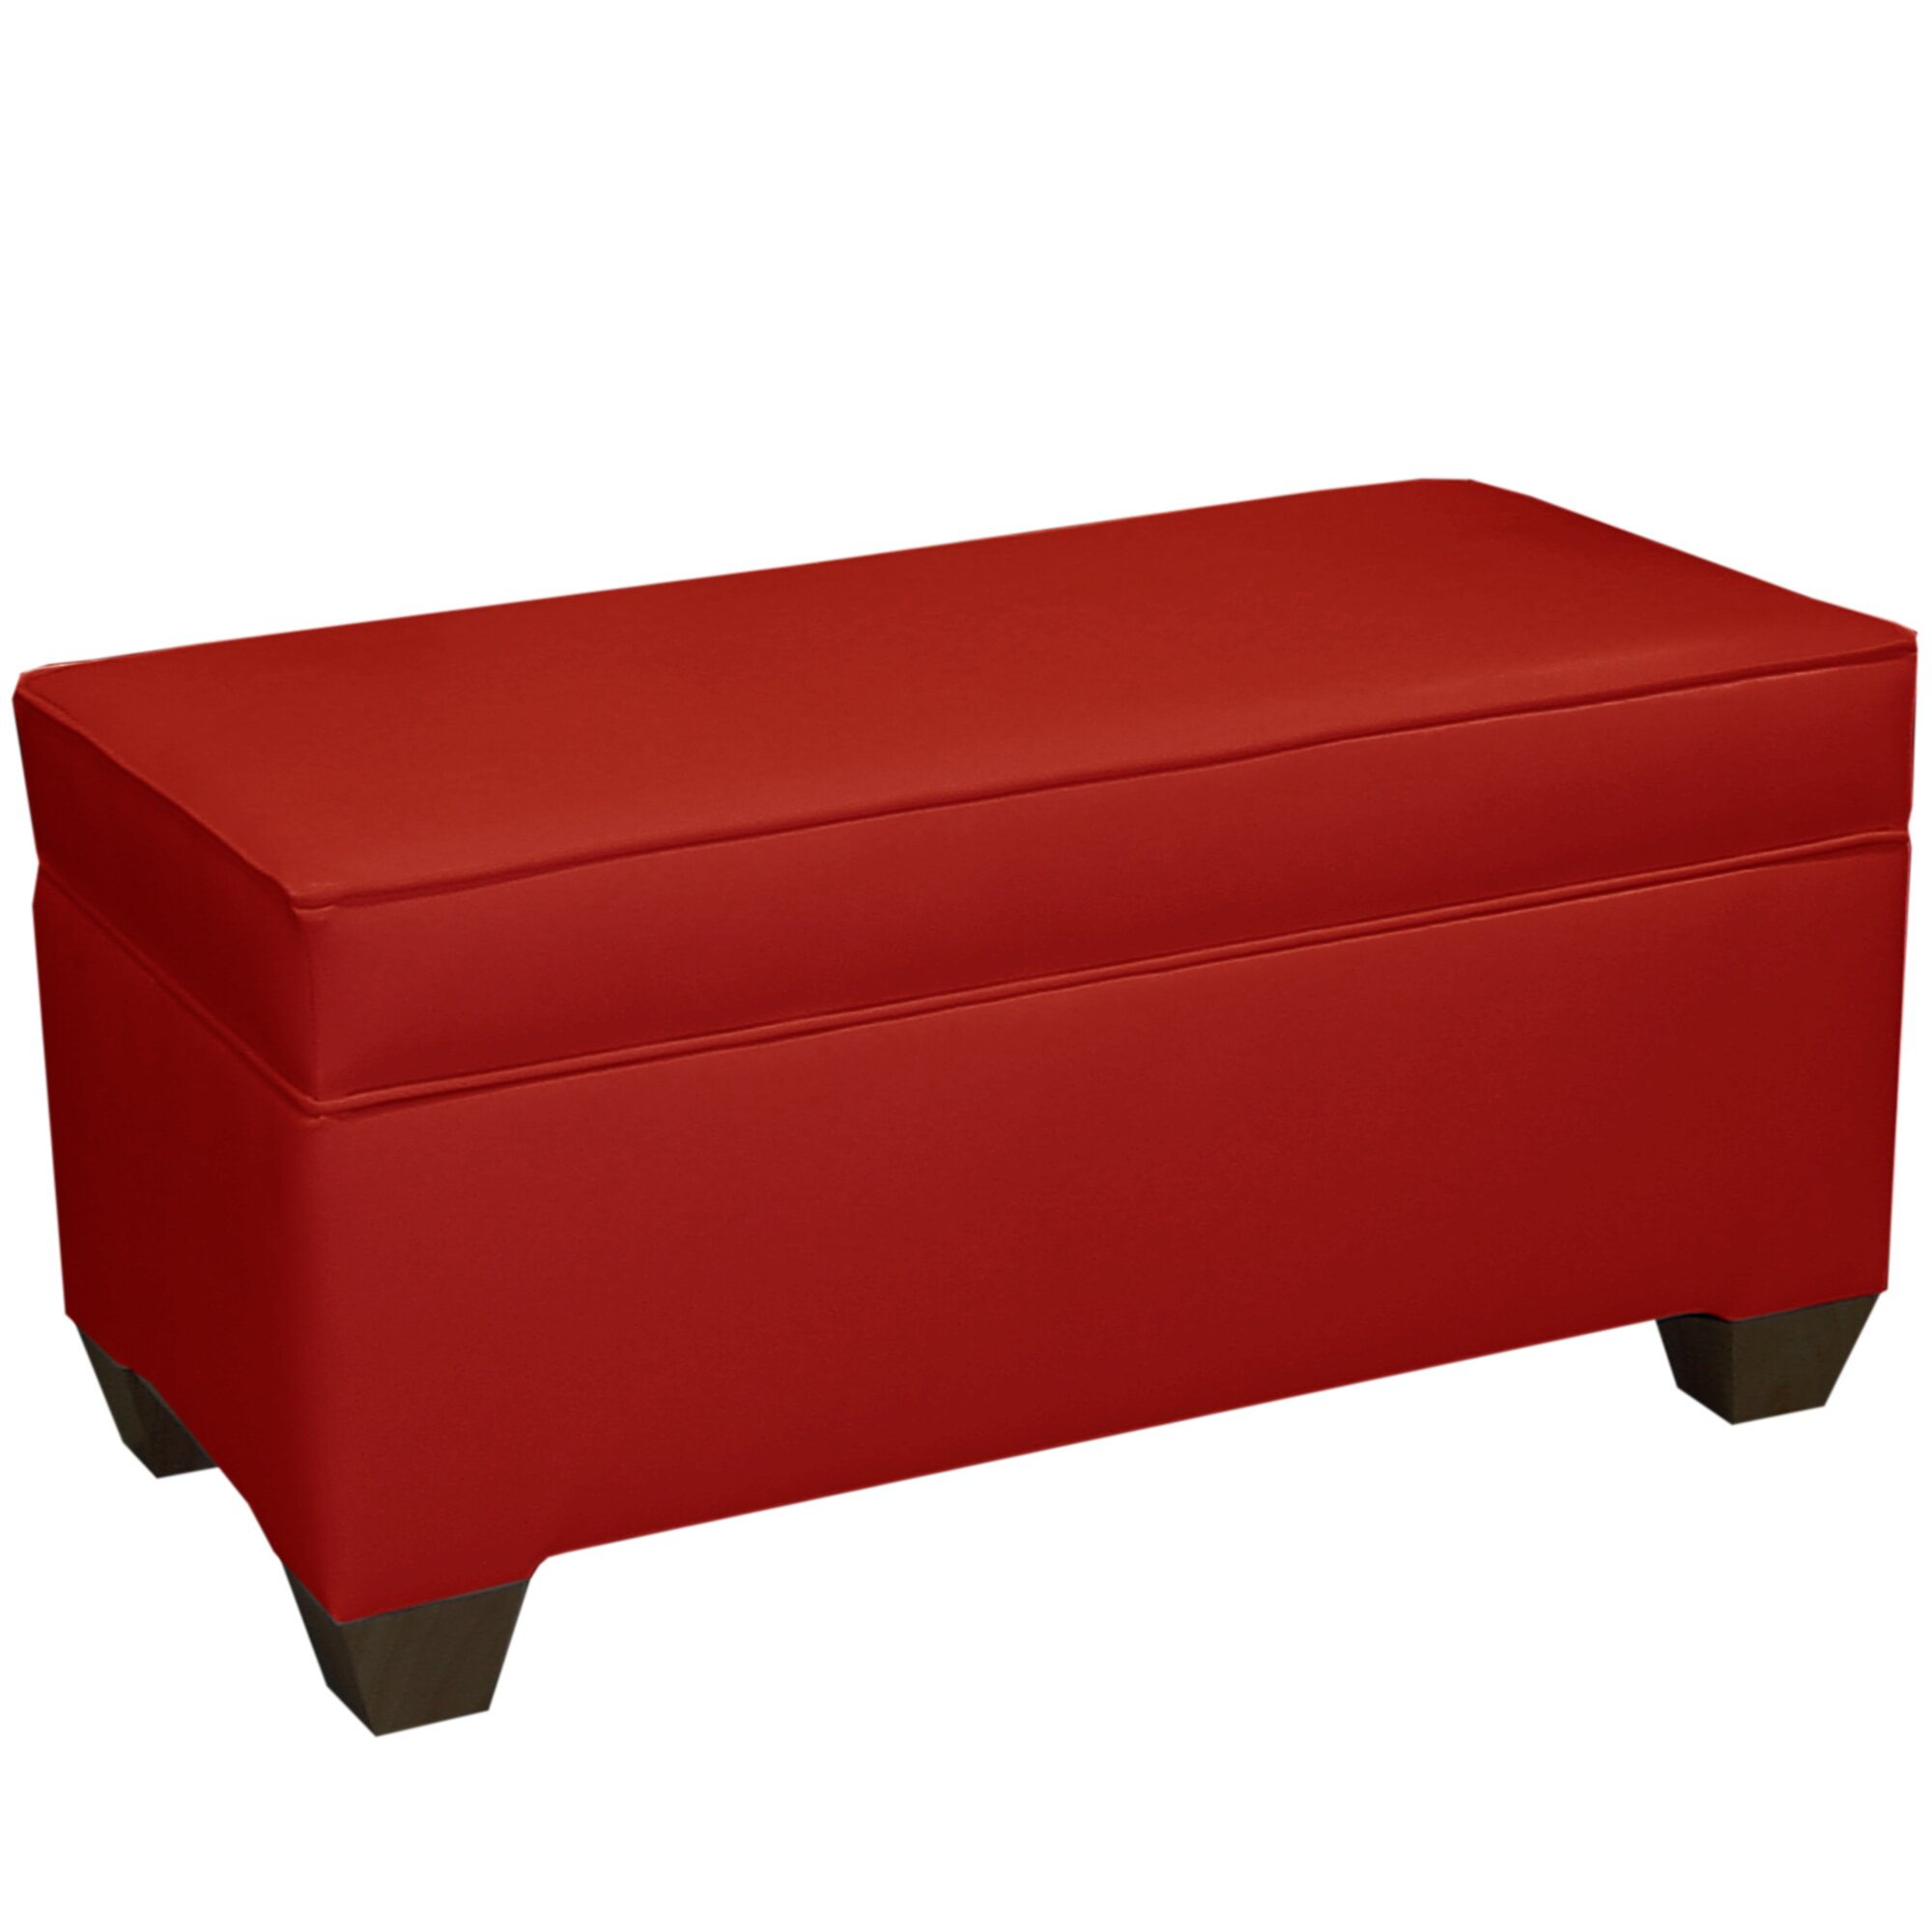 red barrel studio hardenburgh fabric storage bedroom bench